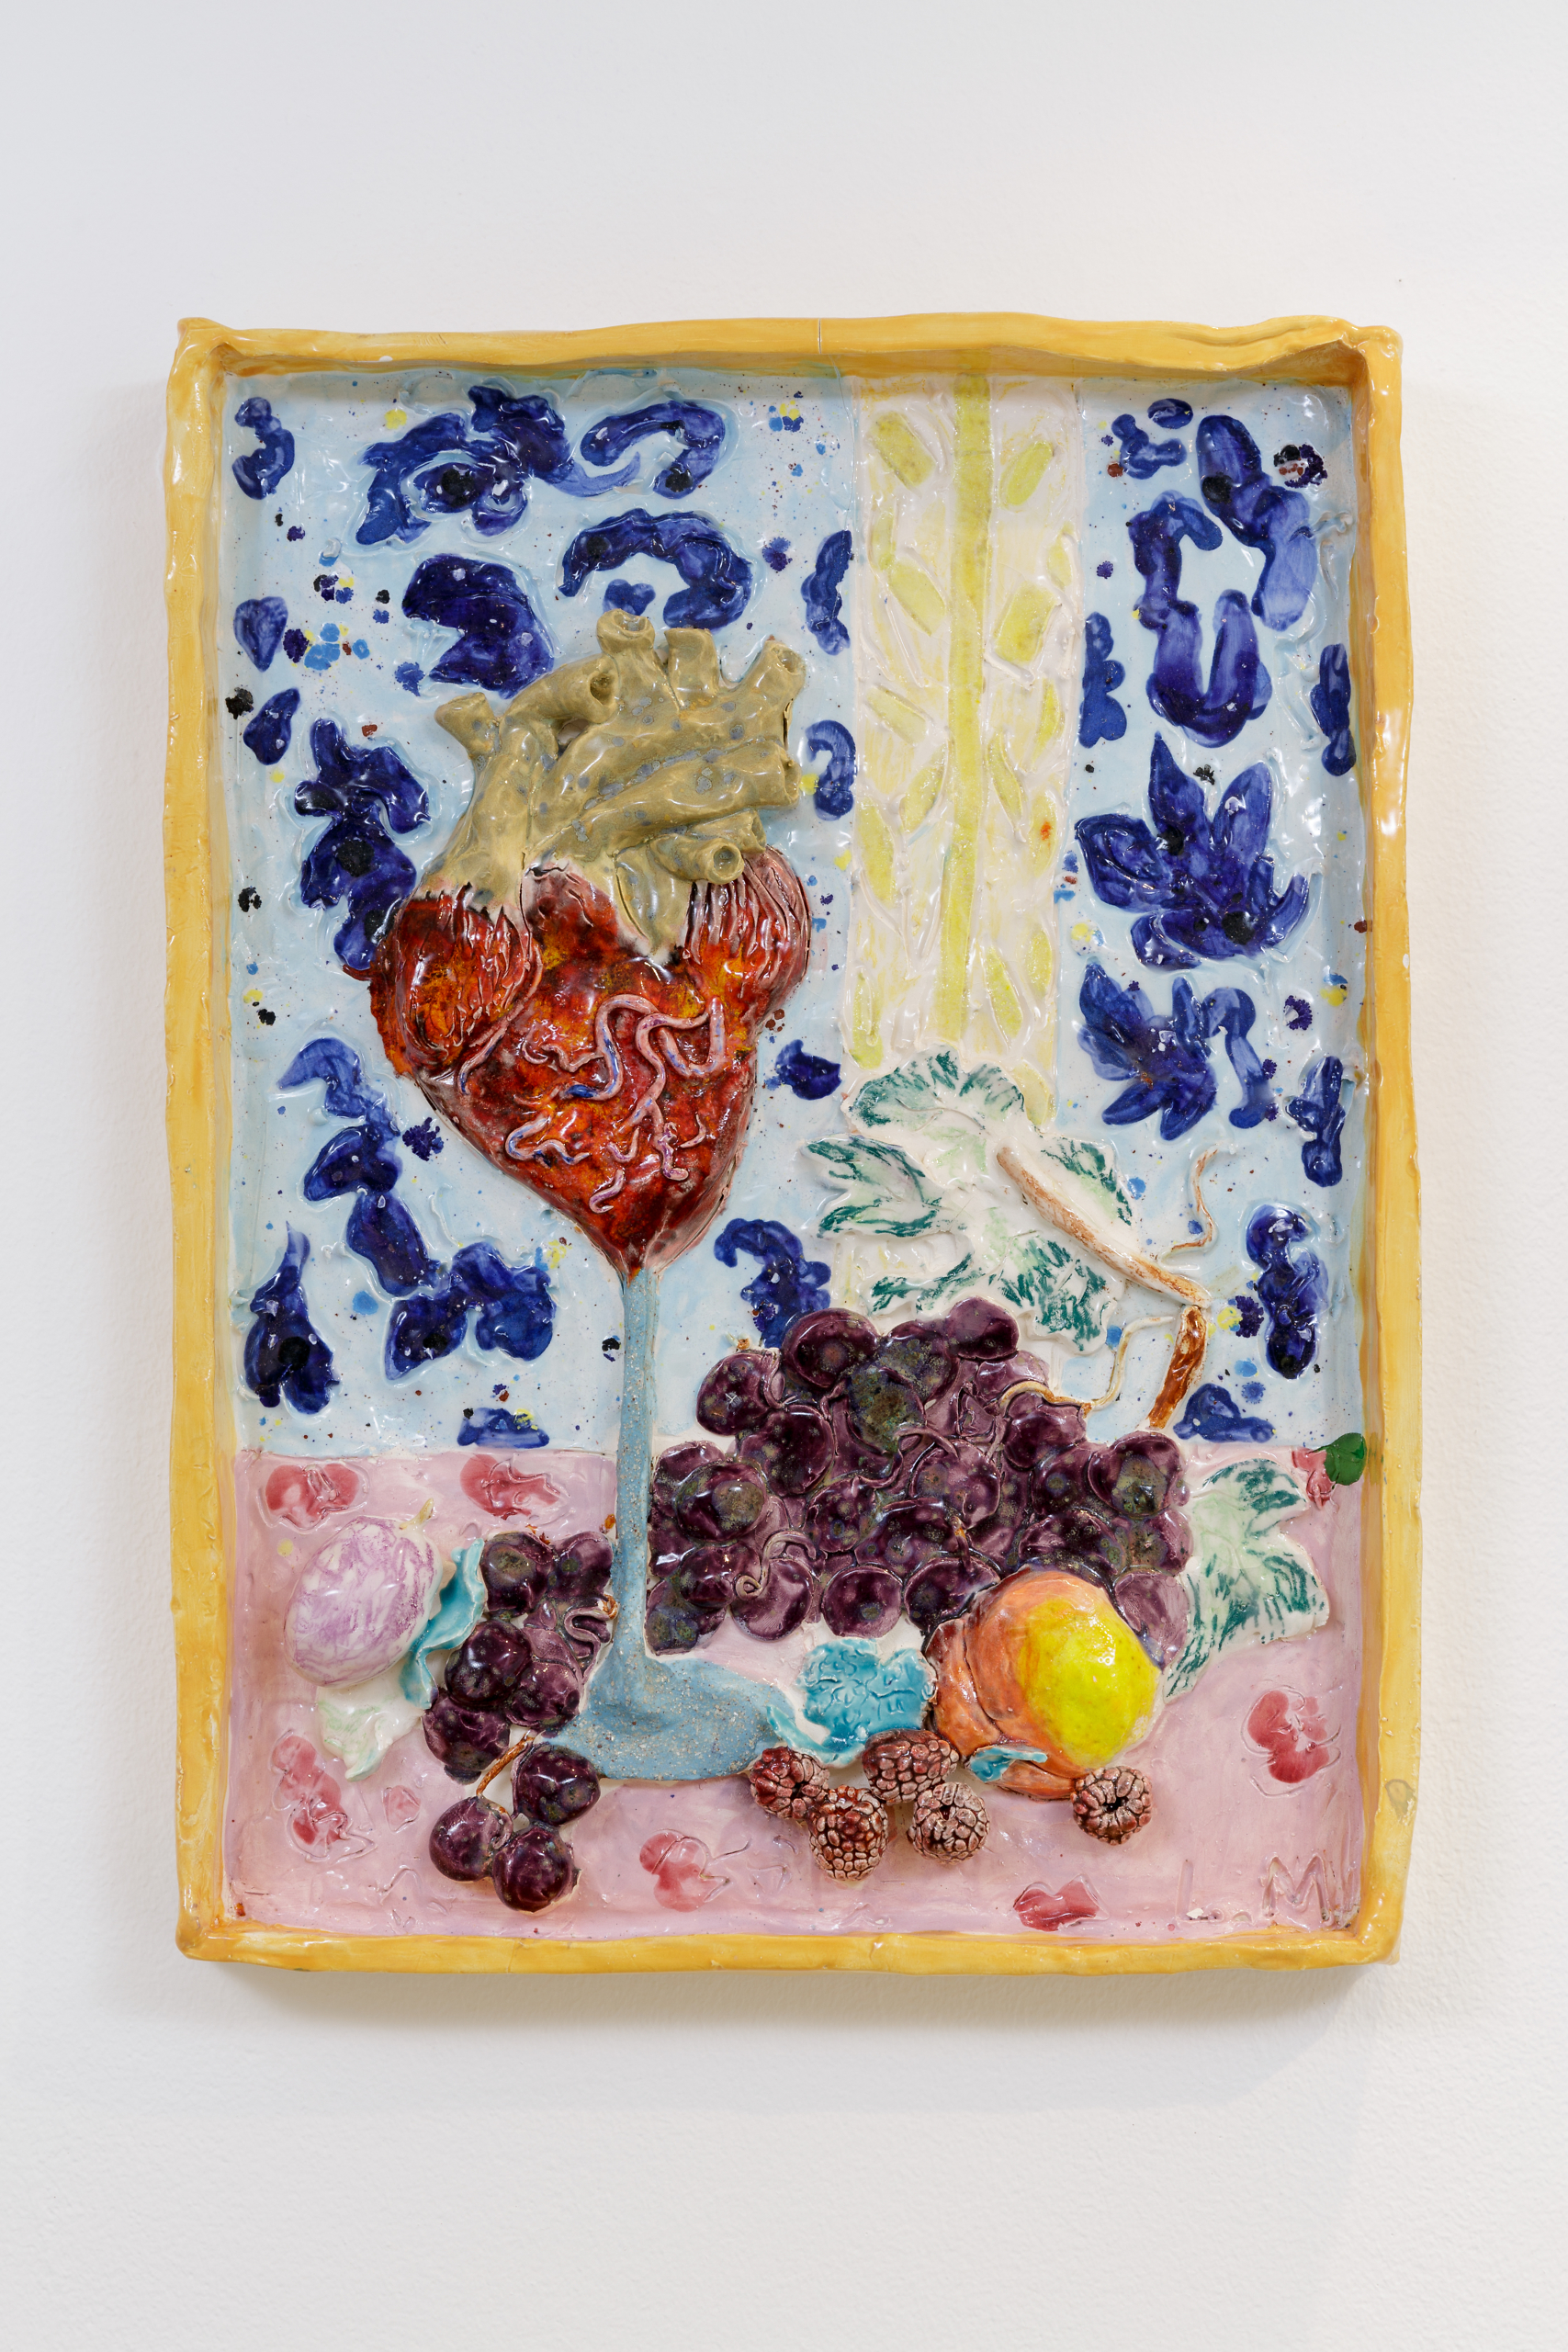 Lindsey Mendick, Booze Makes the Heart Grow Fonder, 2018. Glazed ceramic. 40 x 30 x 5 cm. Photographer: Nicolas Gysin.